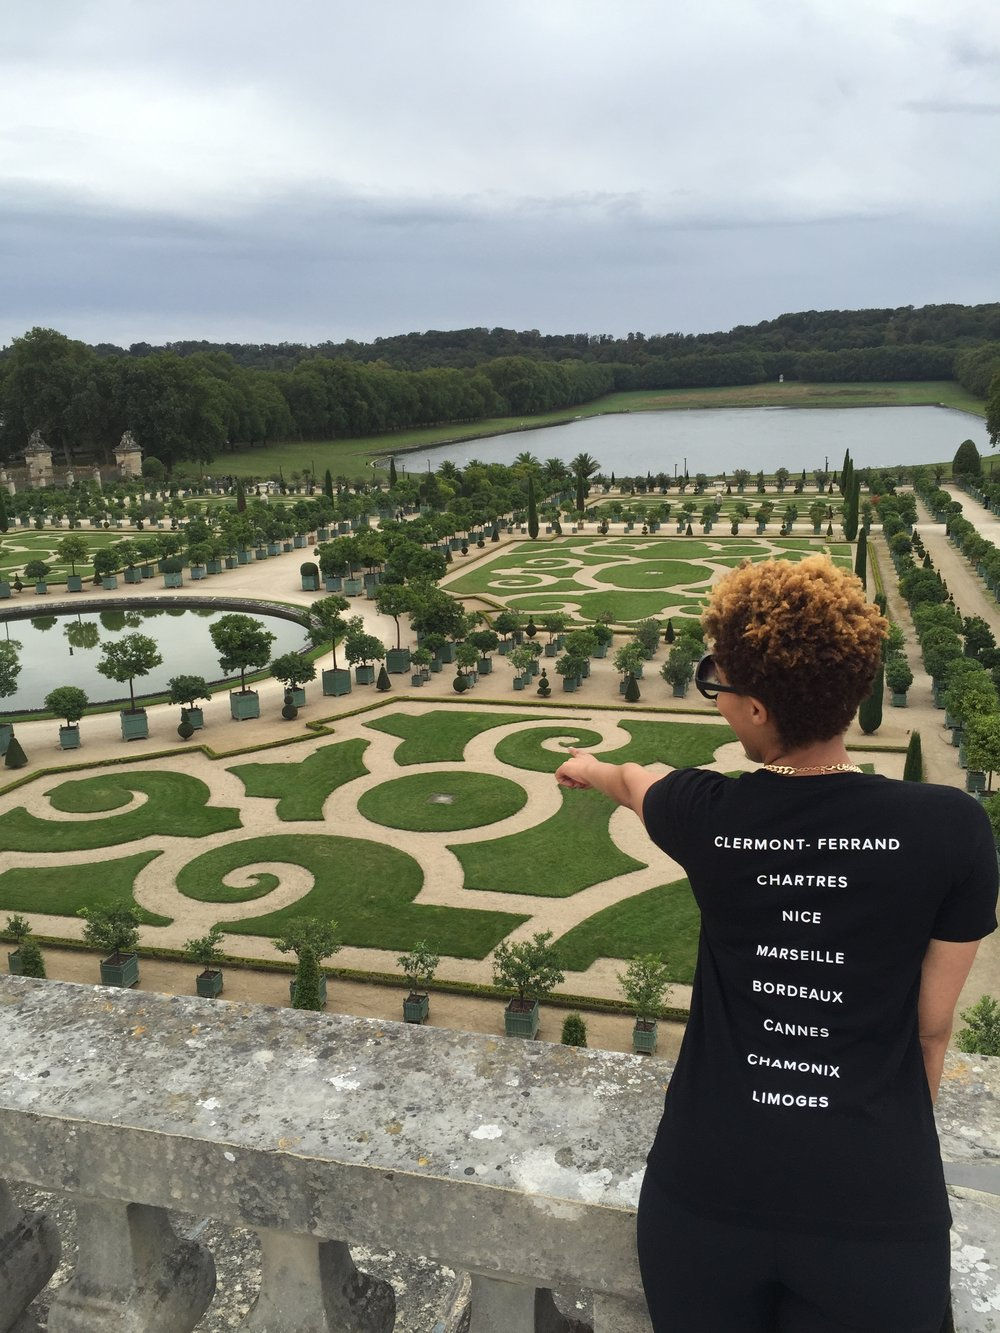 The gardens of Versailles!